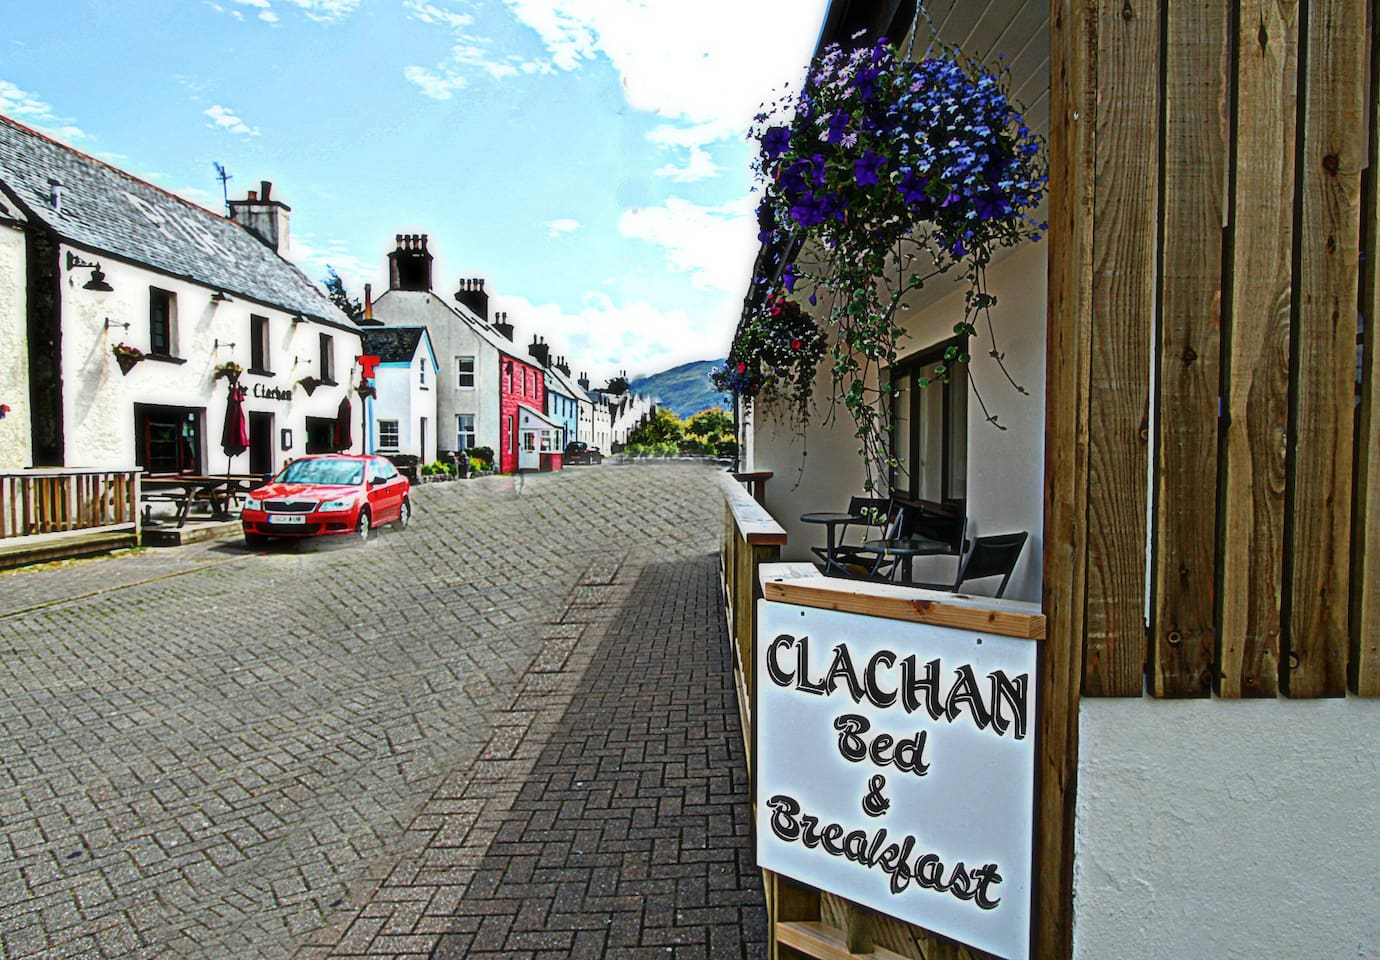 Clachan Bed & Breakfast and The Clachan